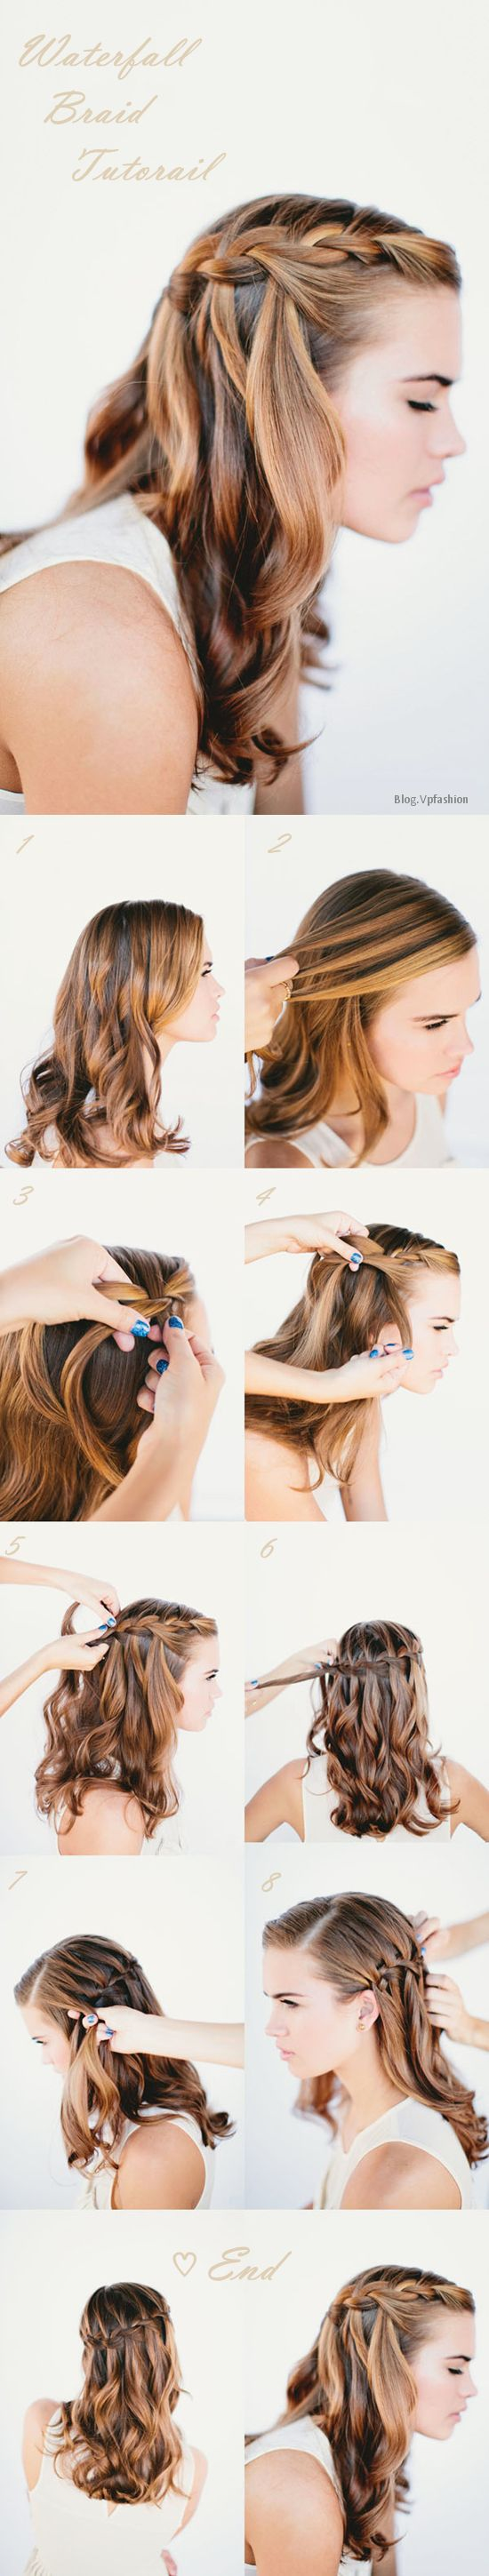 7 Braided Hairstyles for Wedding in Autumn 2013